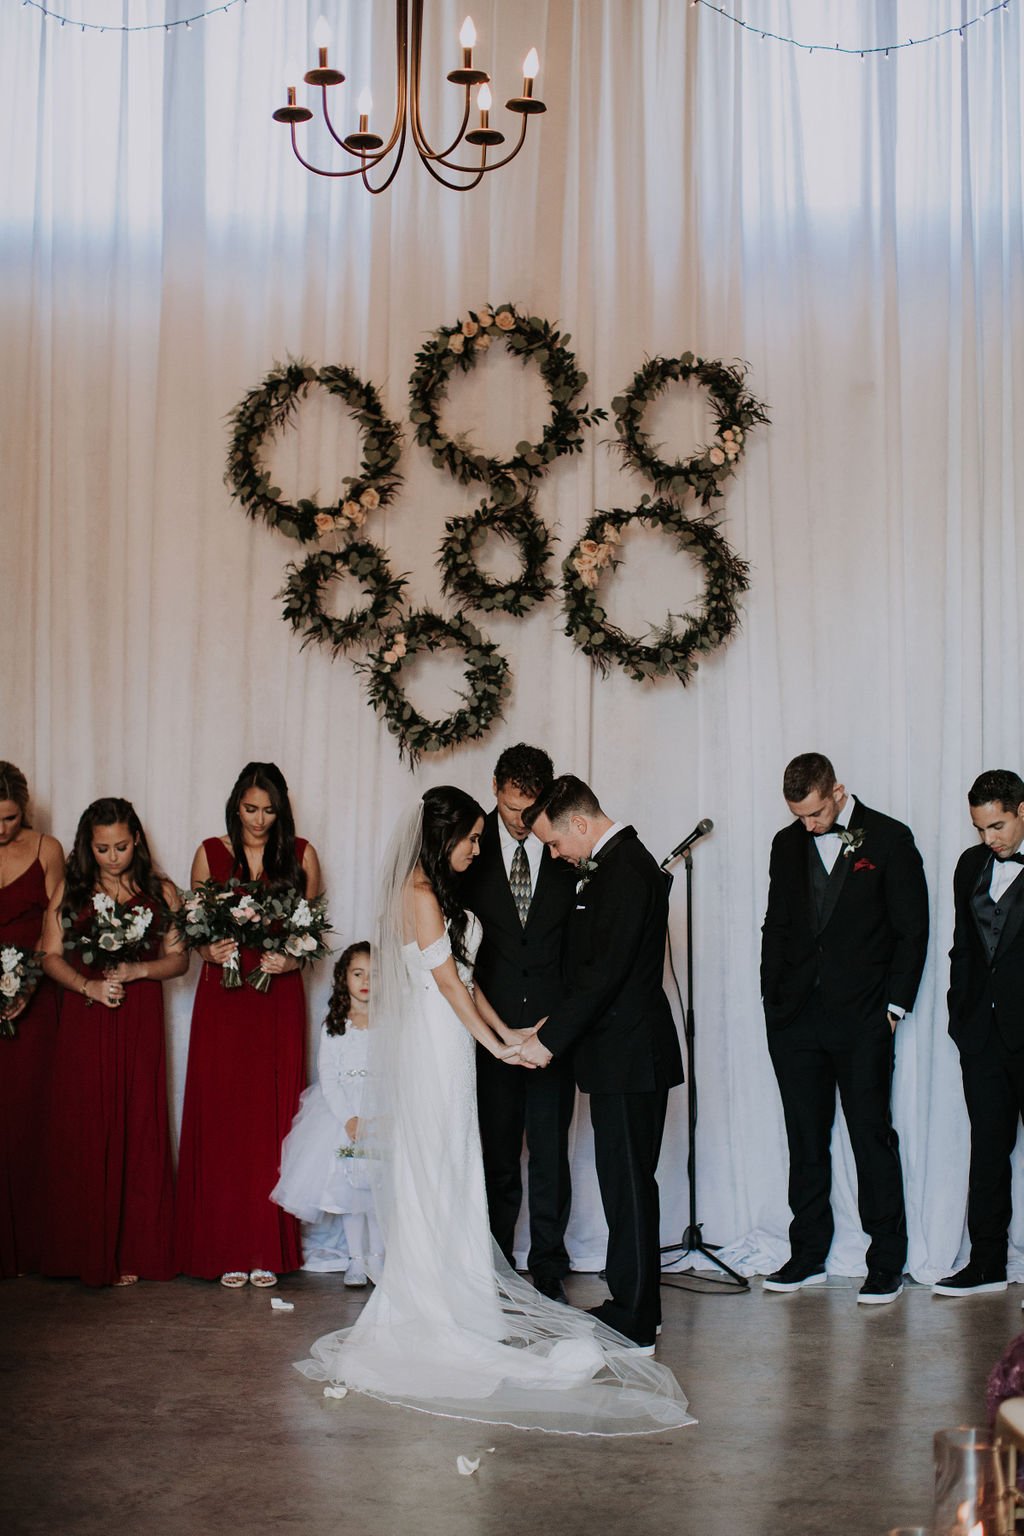 CaseyandChadWeddingORIGINALS_20190126_DNP_2577.jpg